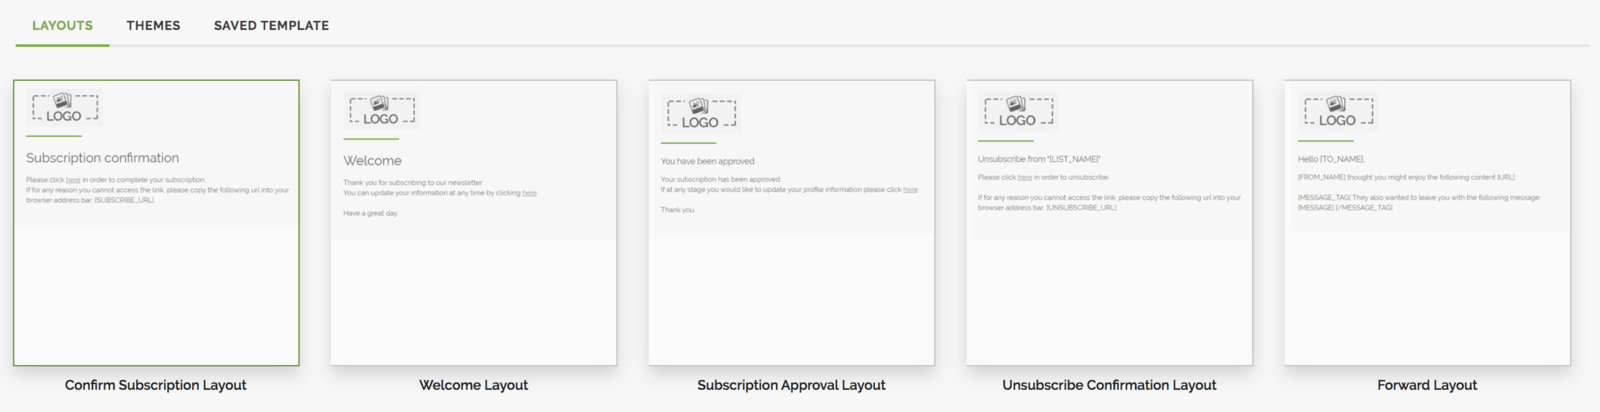 Confirm Subscription Layout